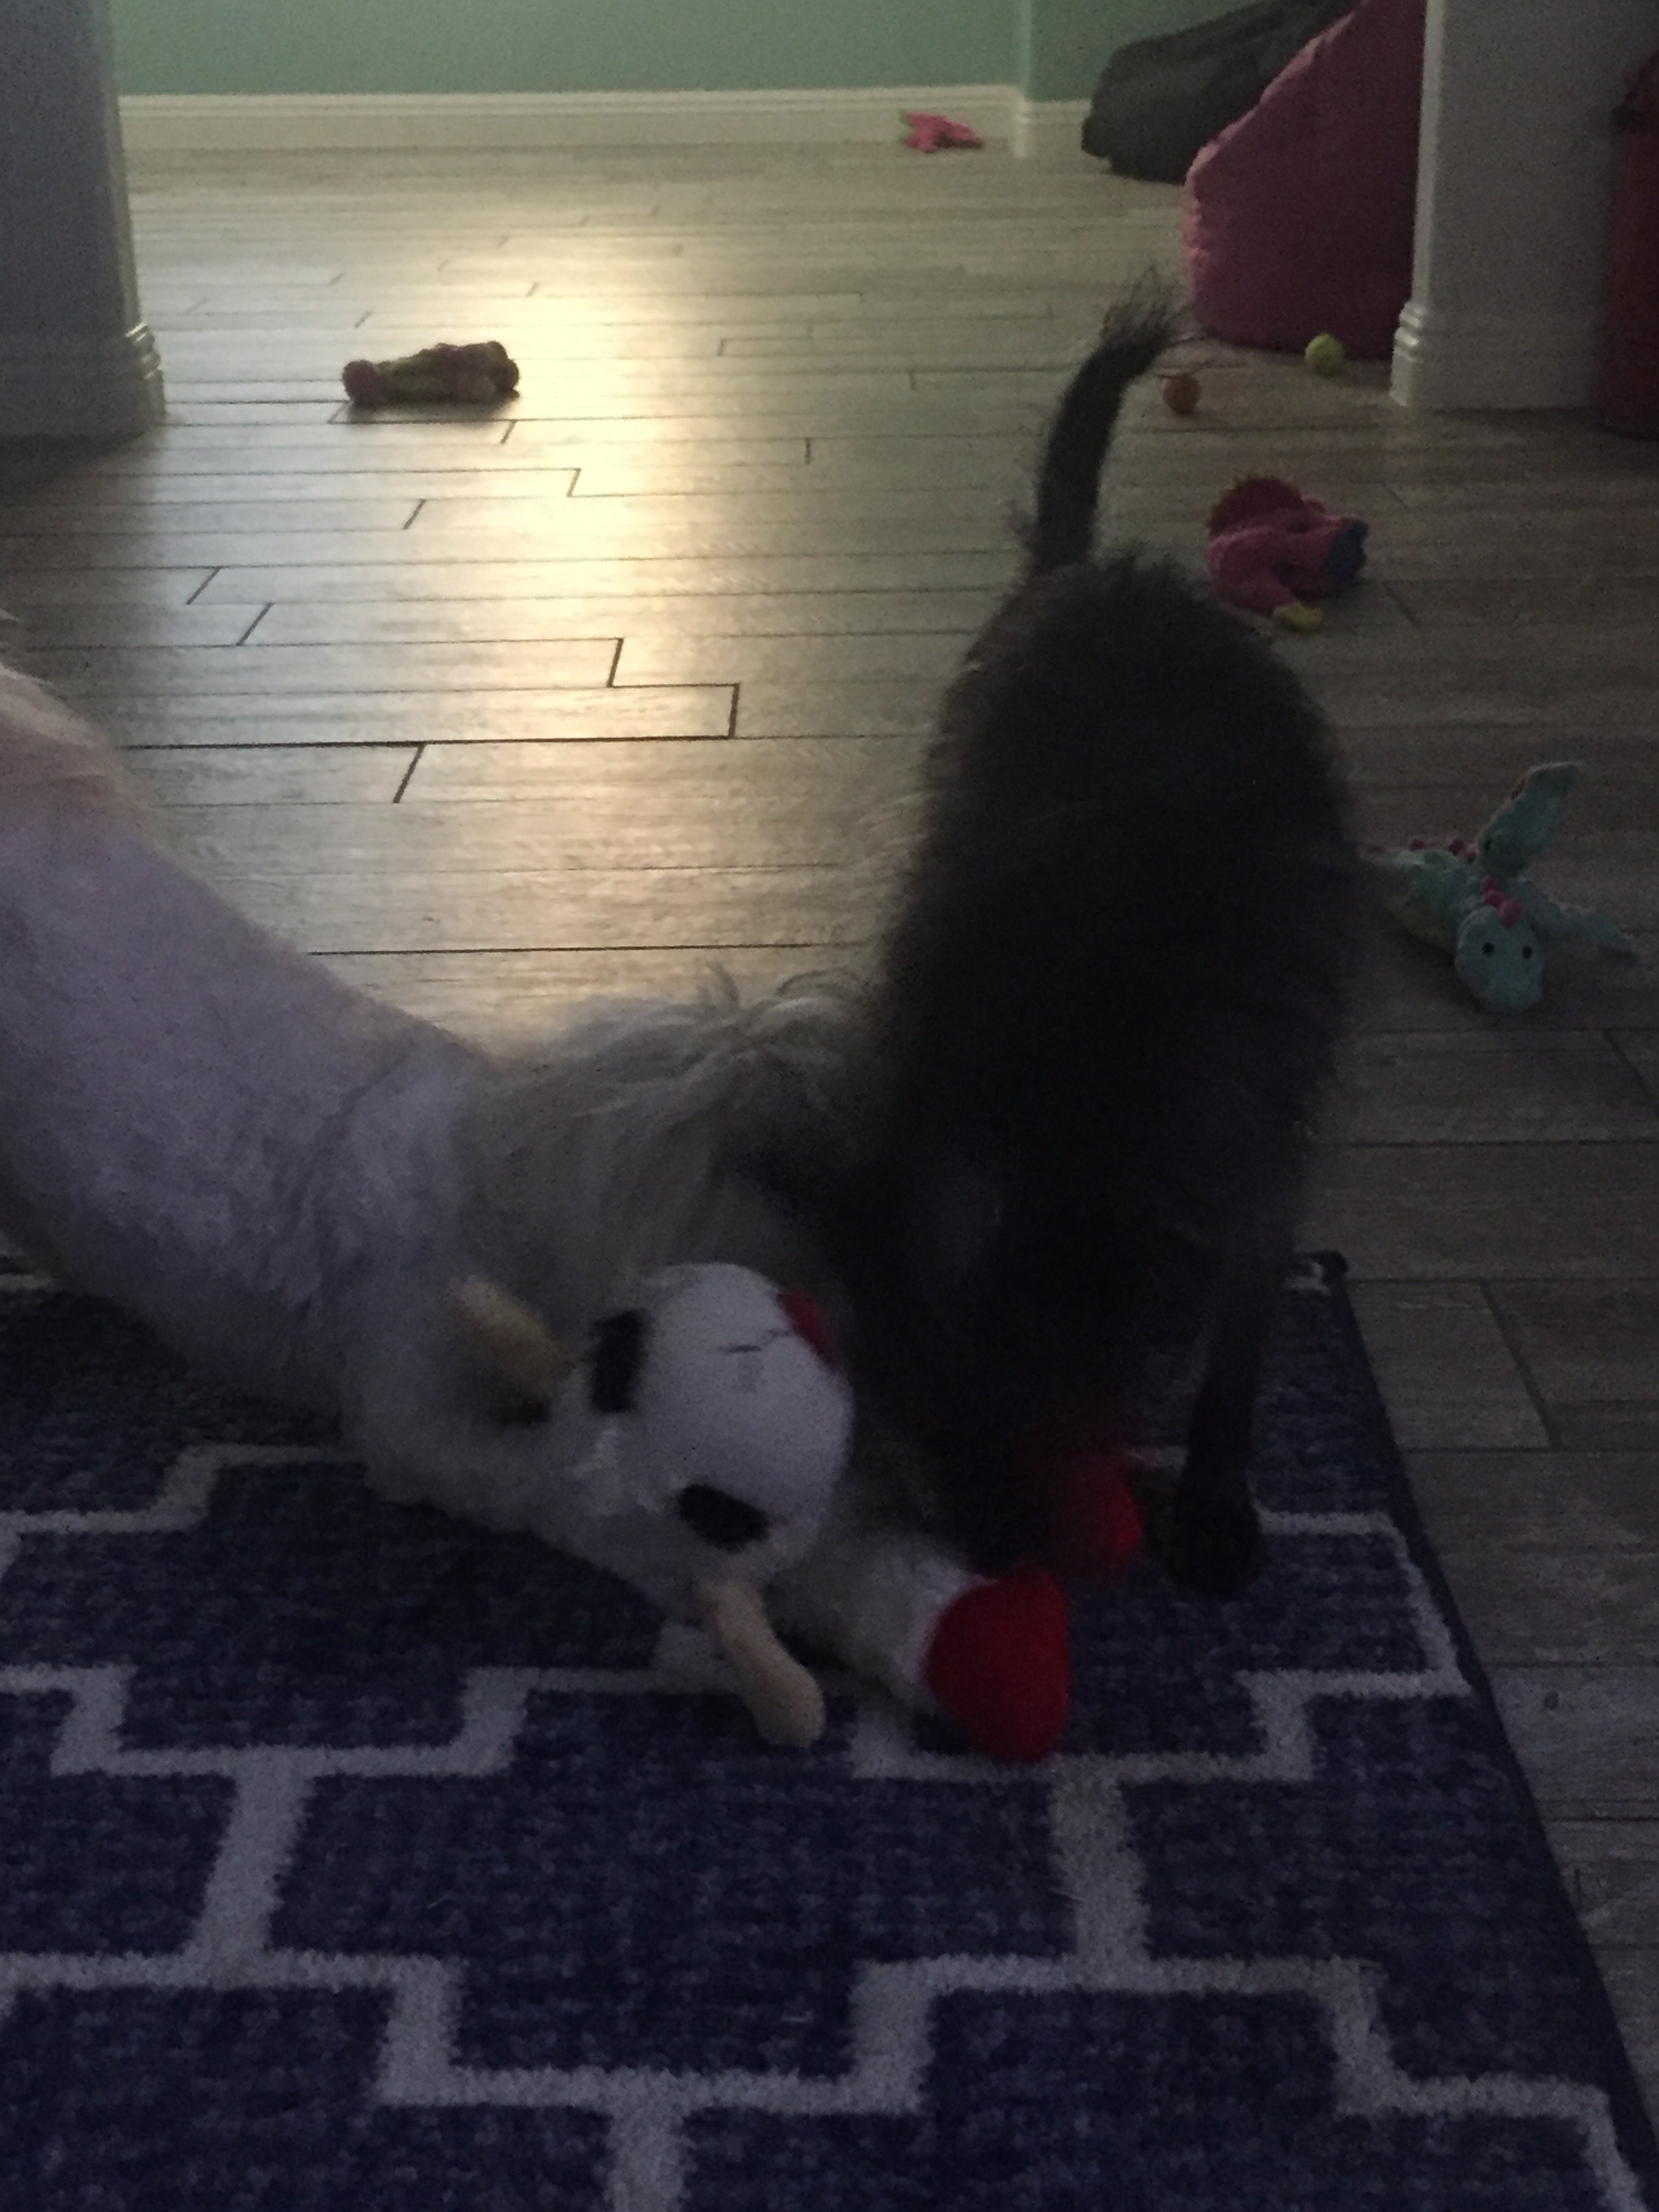 Winnie and Pippa playing with Lamby together. With squeakers in her paws and belly, Lamby provides squeaks for everyone!